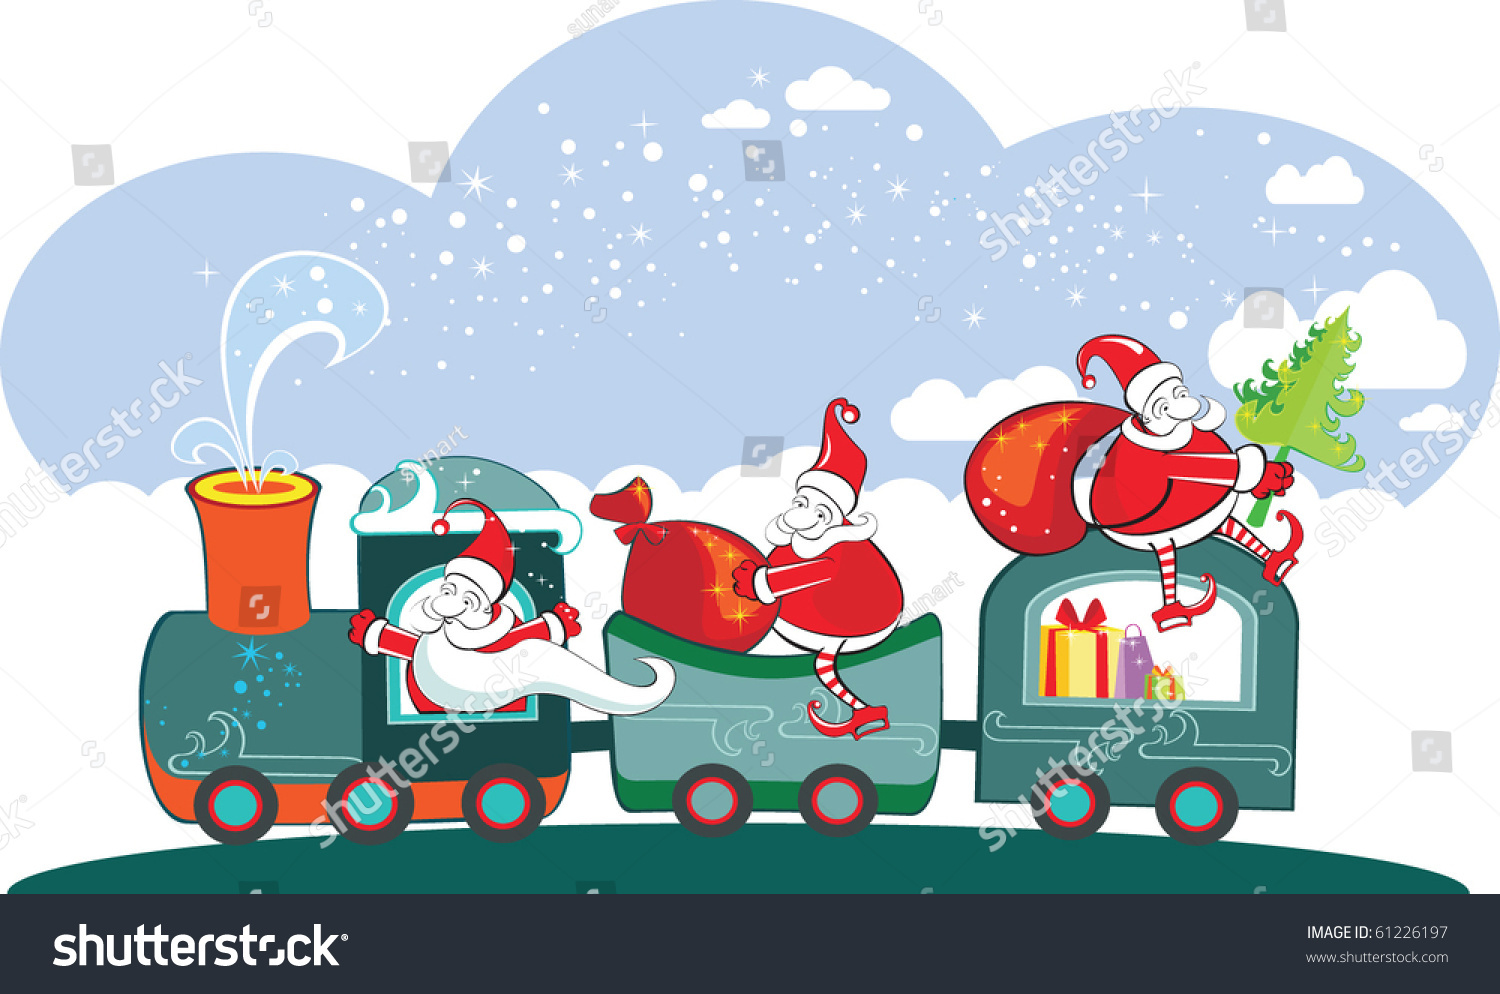 New Year Winter Christmas Card Happy Stock Vector (Royalty Free ...